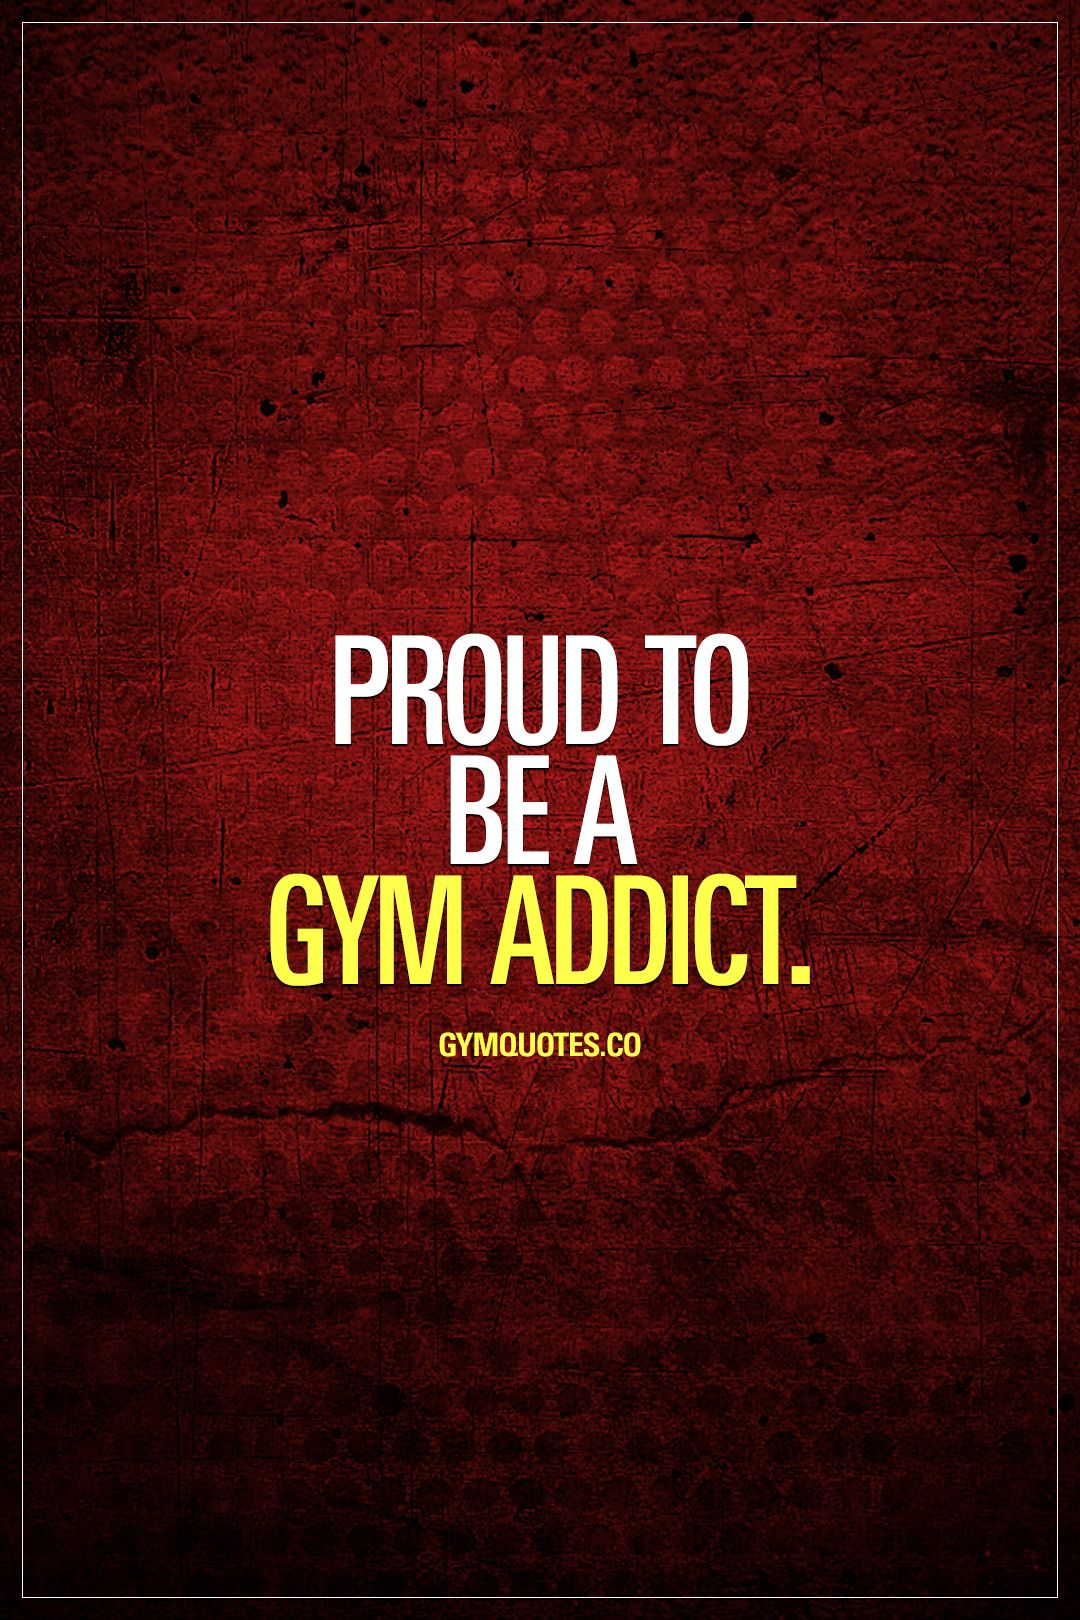 Proud To Be A Gym Addict Like And Save If You Are Gymaddict Gymlover Gymquotes Www Gymquotes Co Fitness Quotes Gym Quote Fitness Motivation Quotes